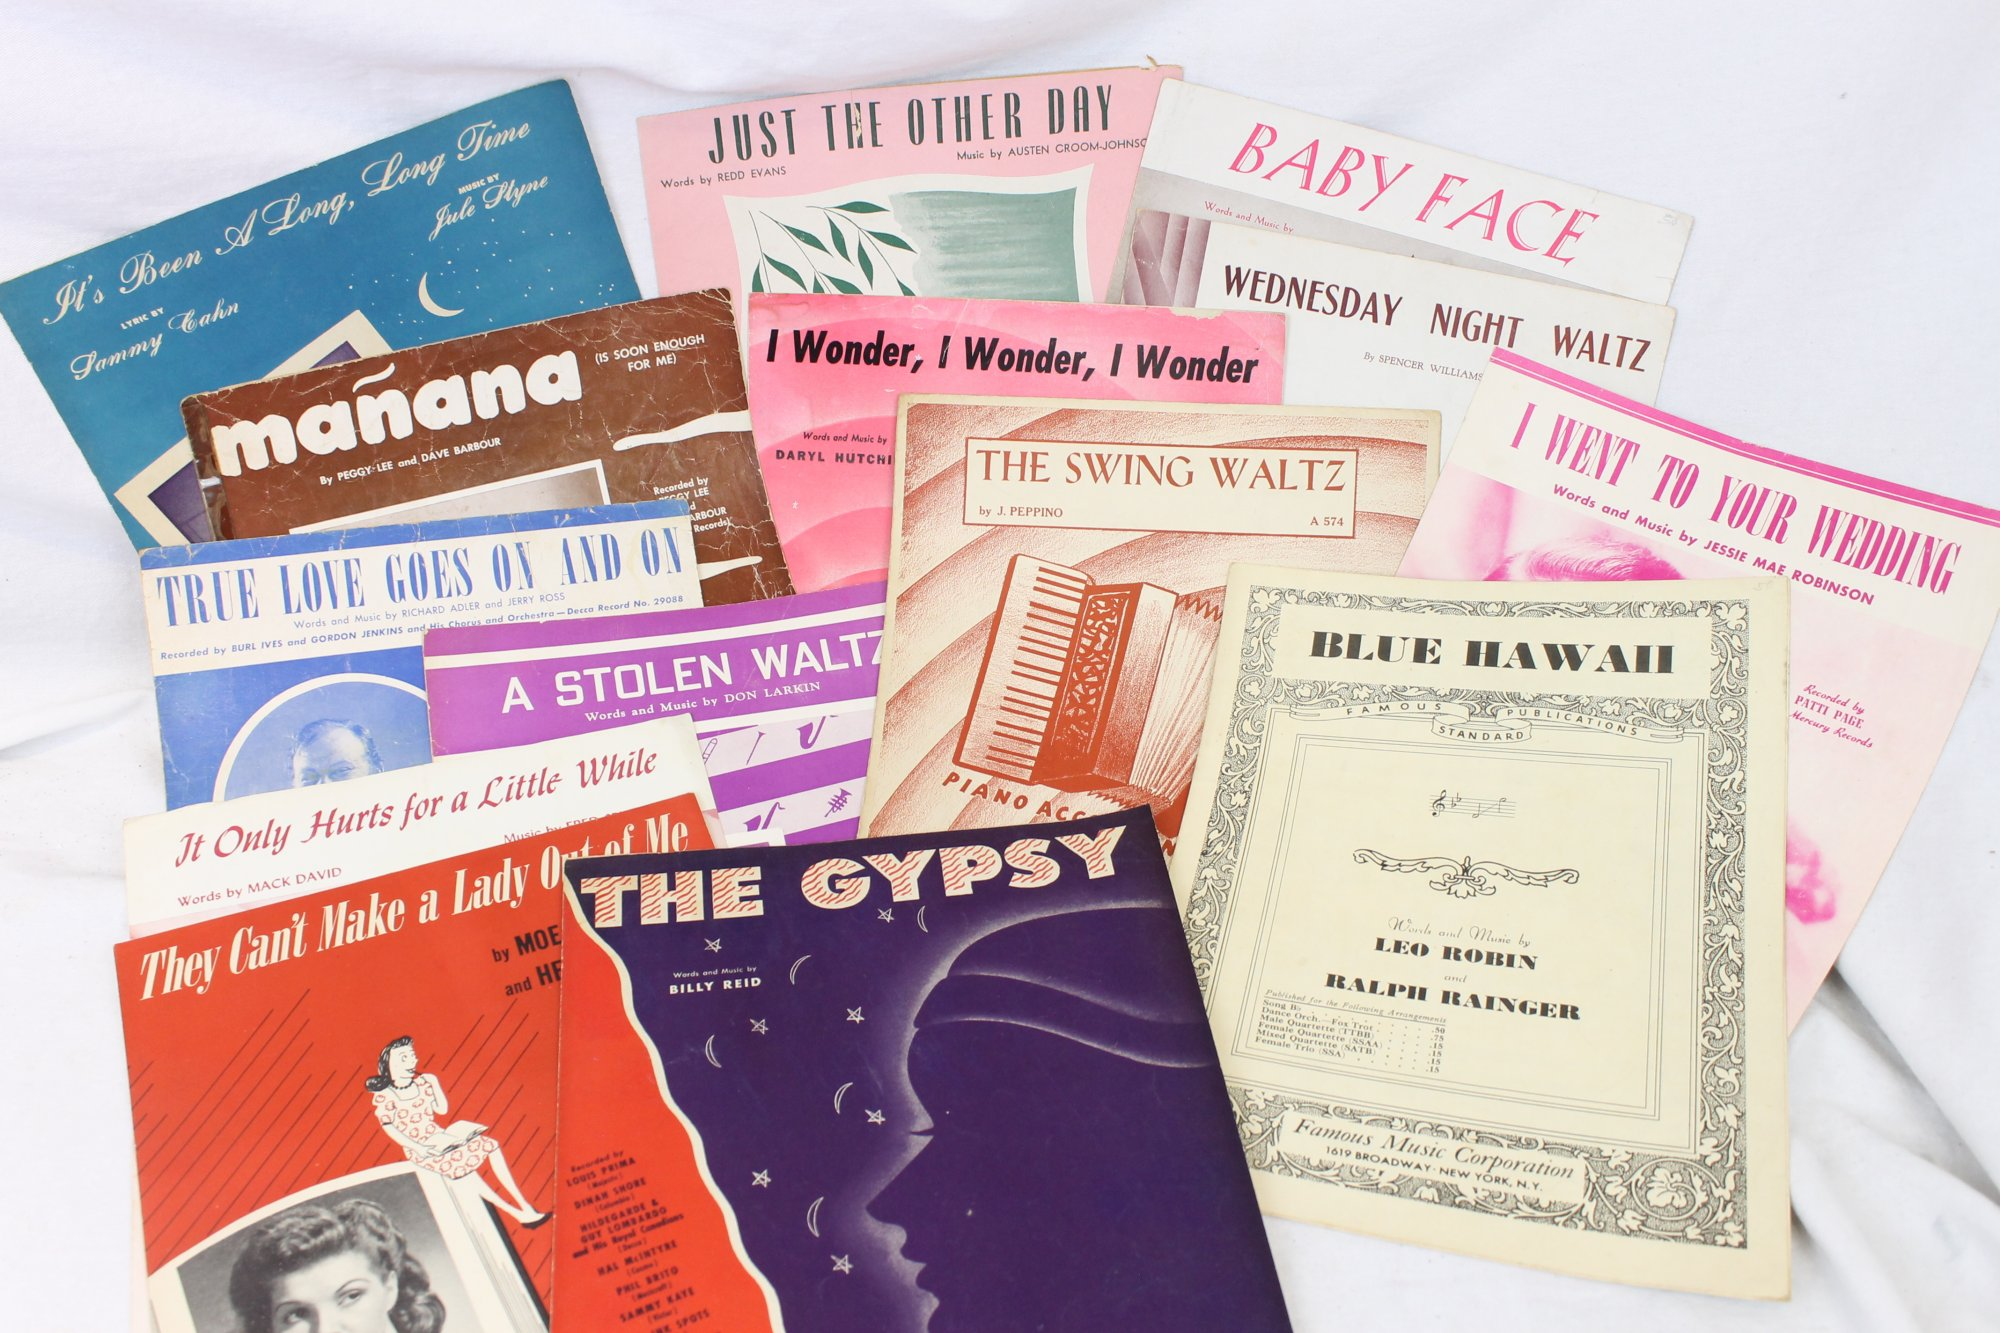 Lot of 26 Used Piano Music Books and Sheets - Classic Pop Tunes